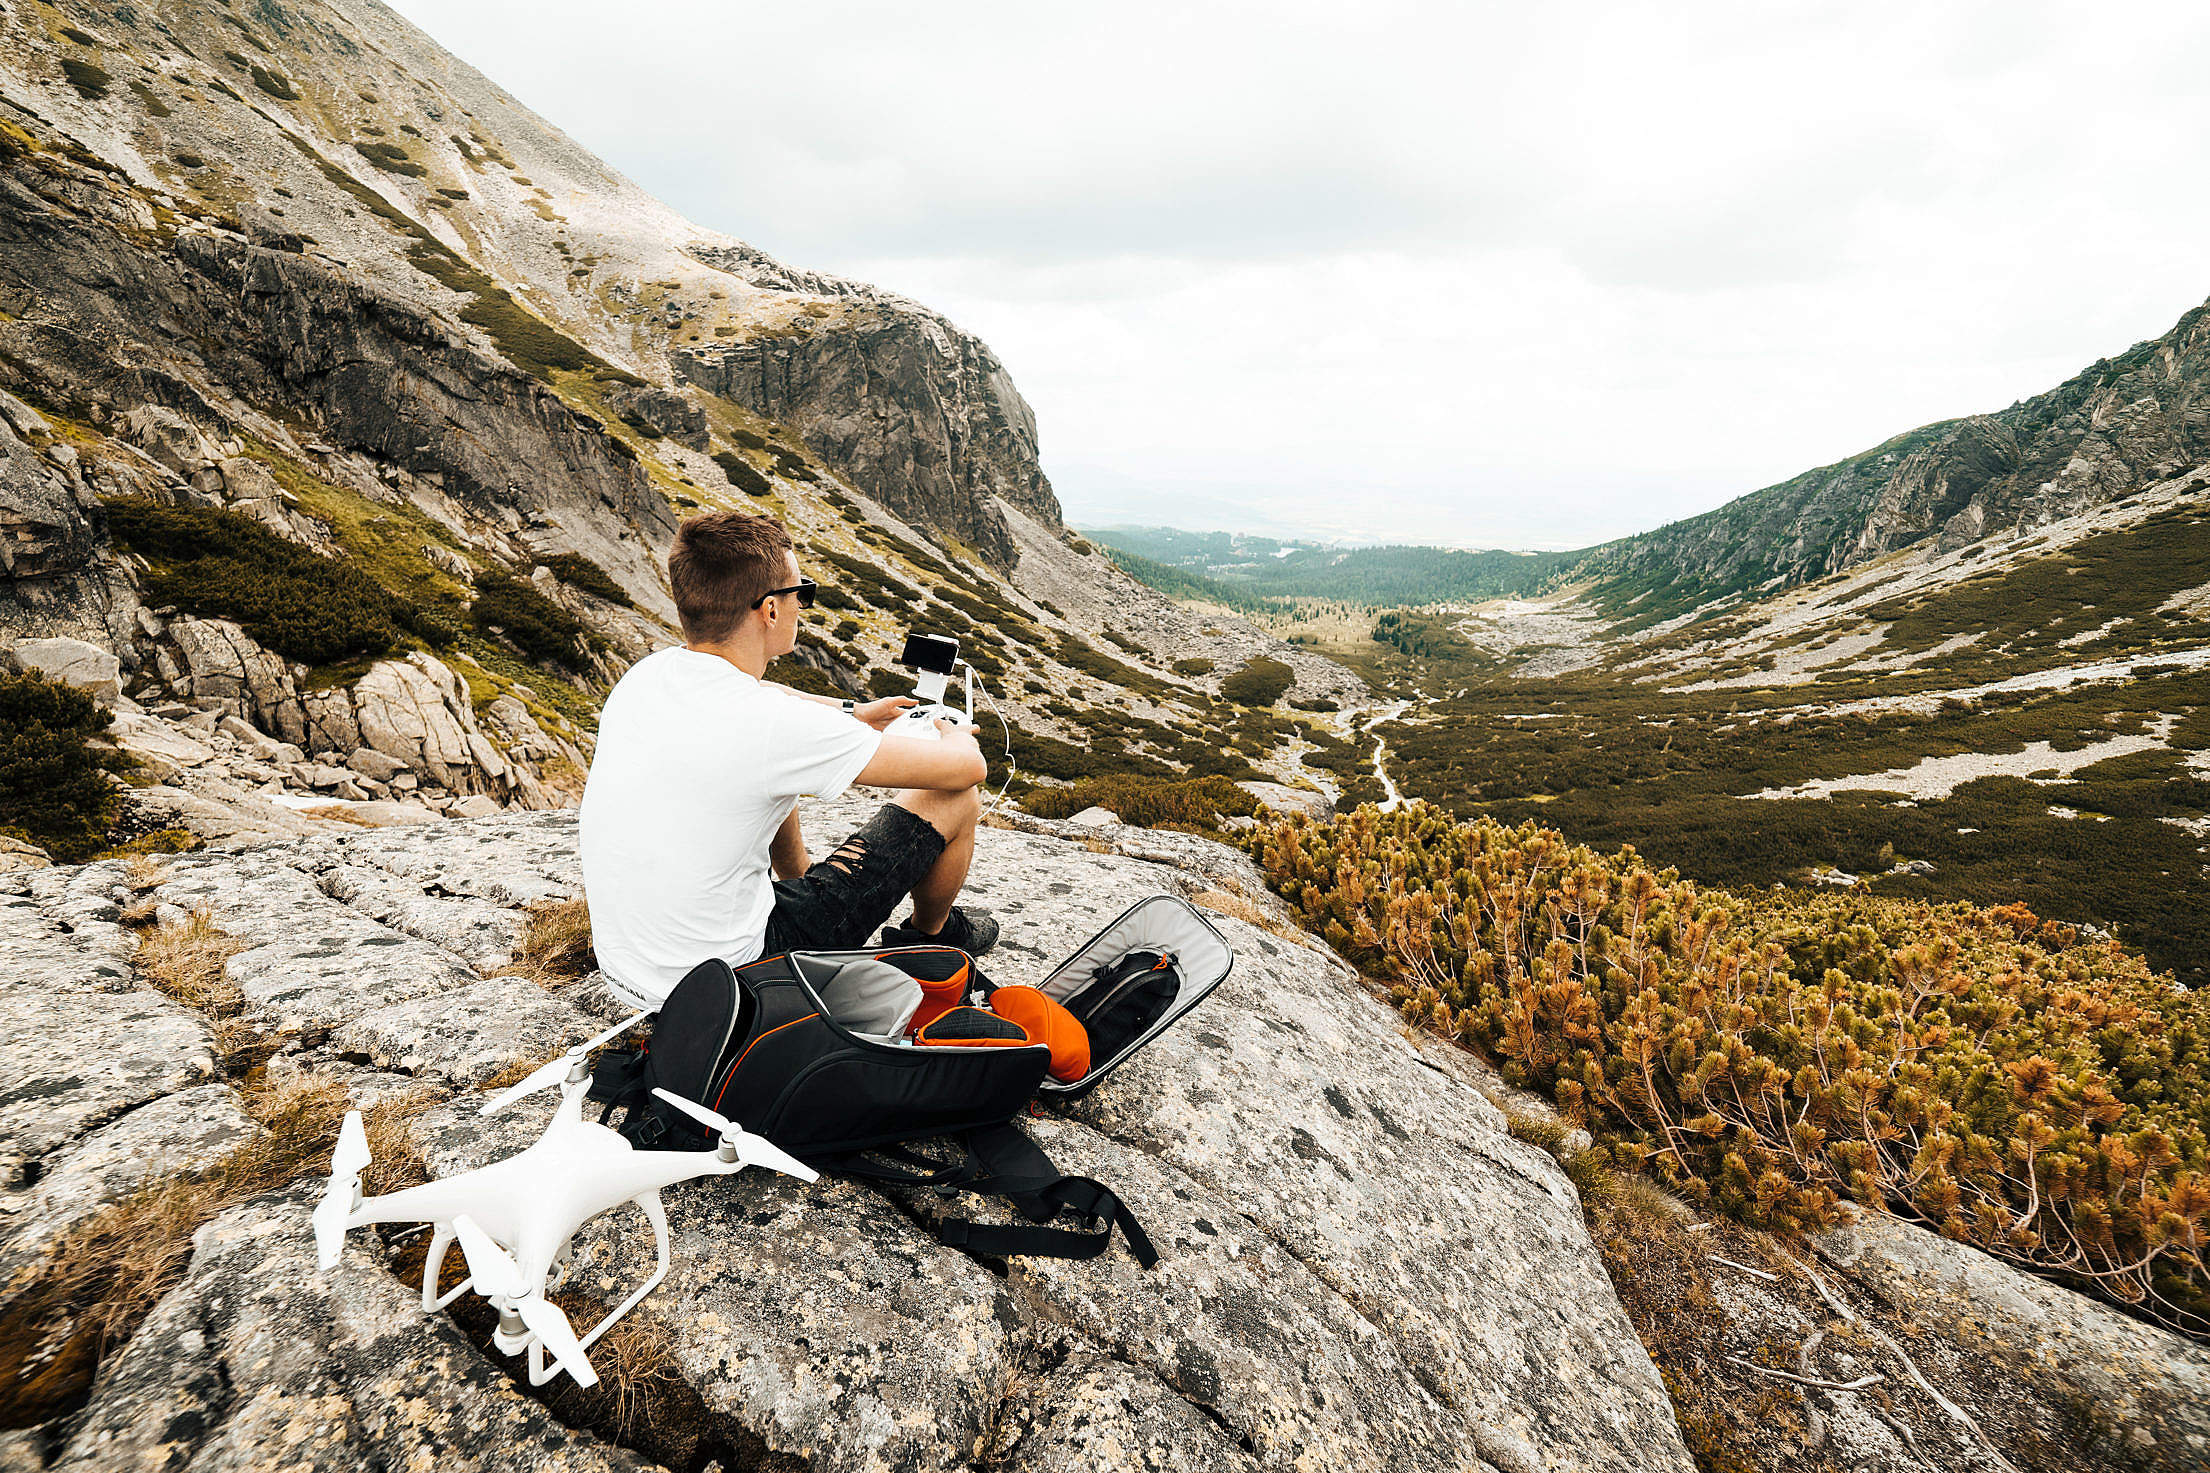 Download Man Setting Up a Drone for Aerial Photography in Mountains Free Stock Photo